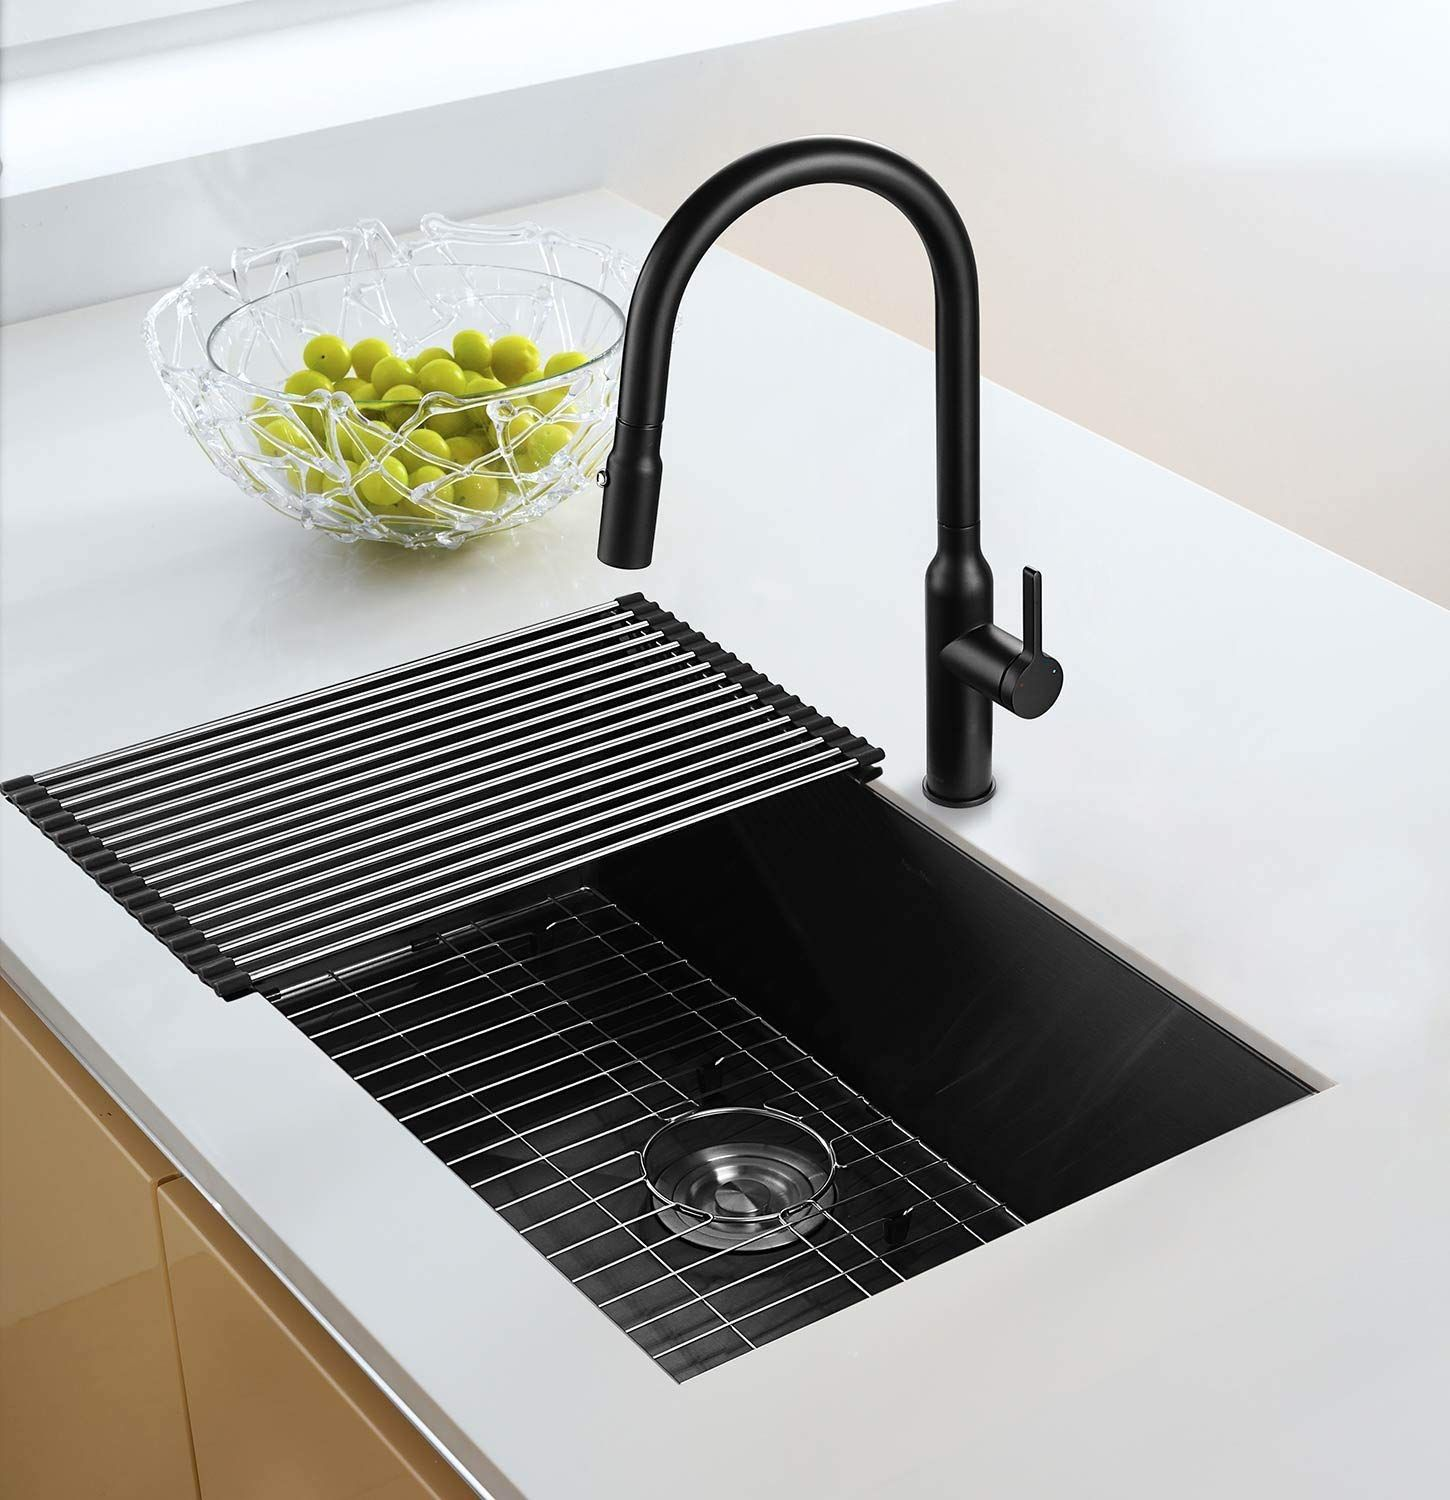 Aguastella As3018mb Kitchen Sink Stainless Steel 30 Inch